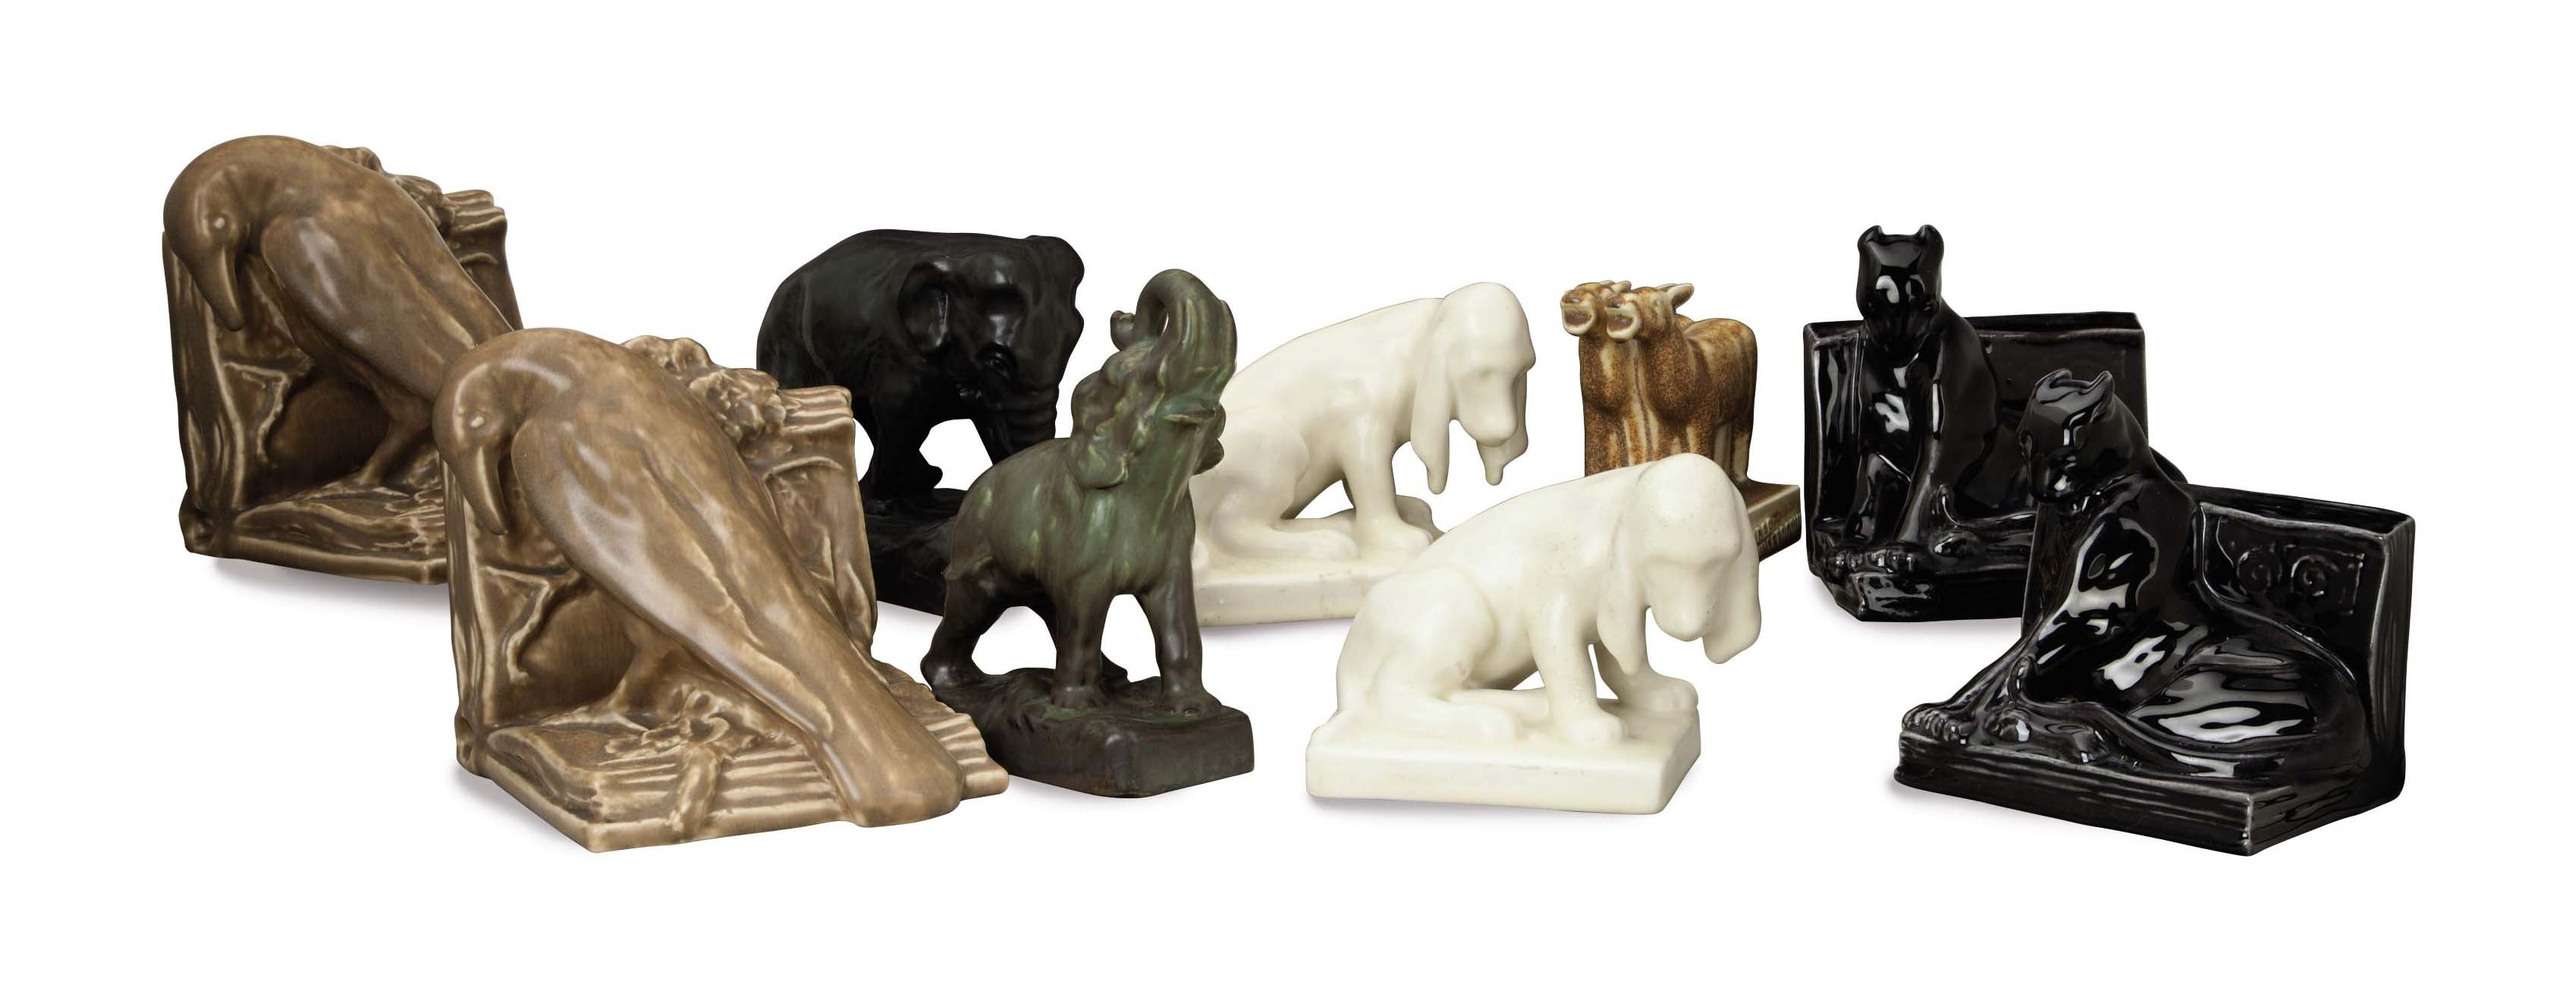 THREE PAIRS OF AMERICAN GLAZED POTTERY BOOK ENDS AND THREE MODELS OF ANIMALS,